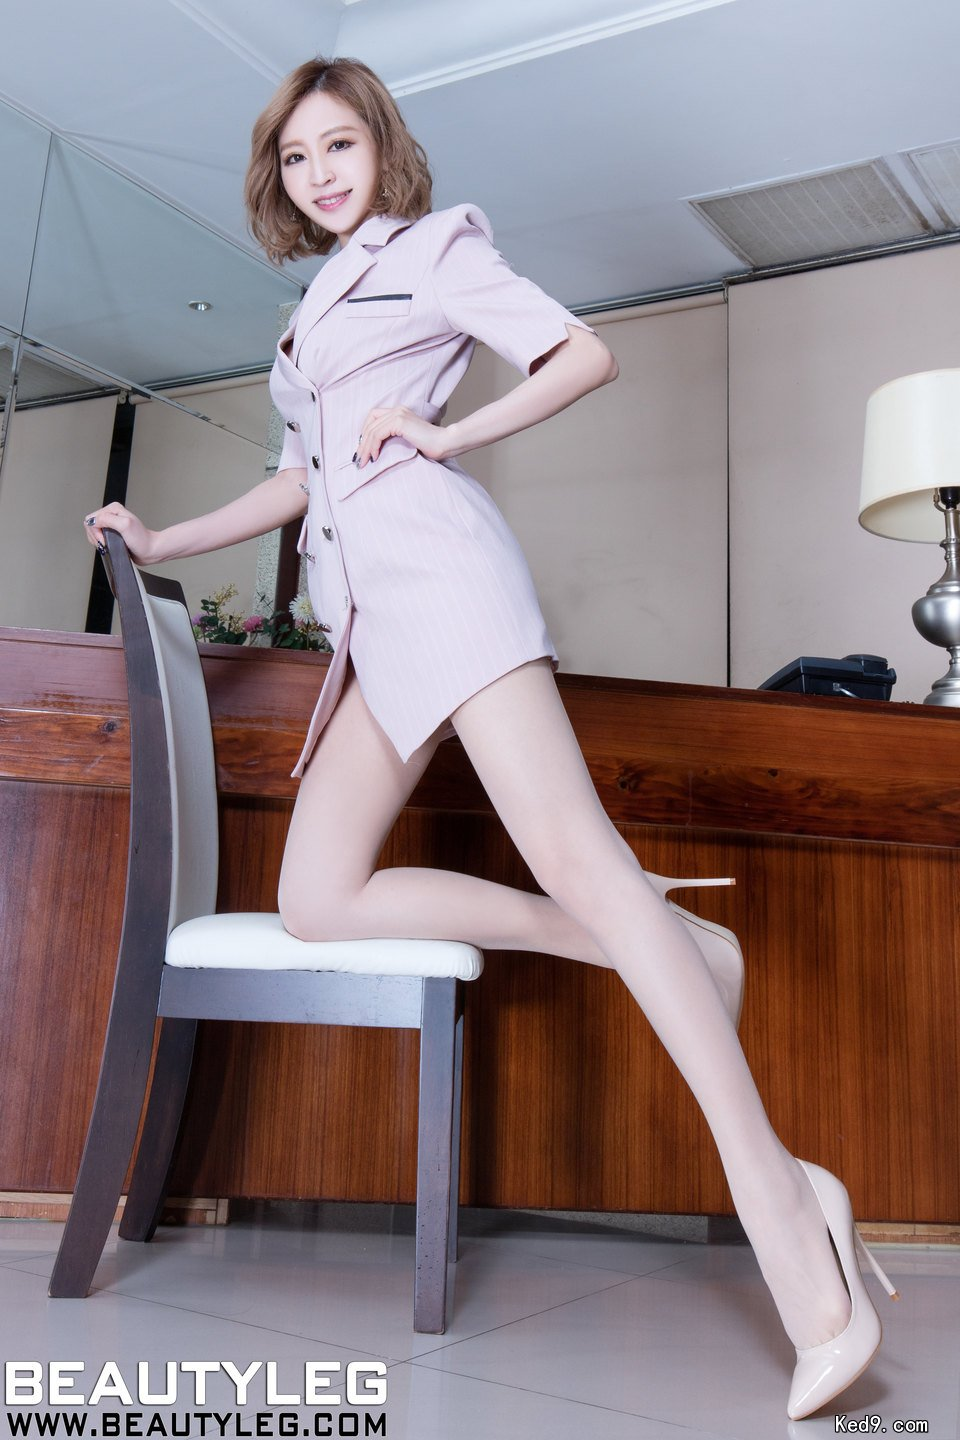 No.1316 BEAUTYLEG LucyのOL美脚画像(25pics)